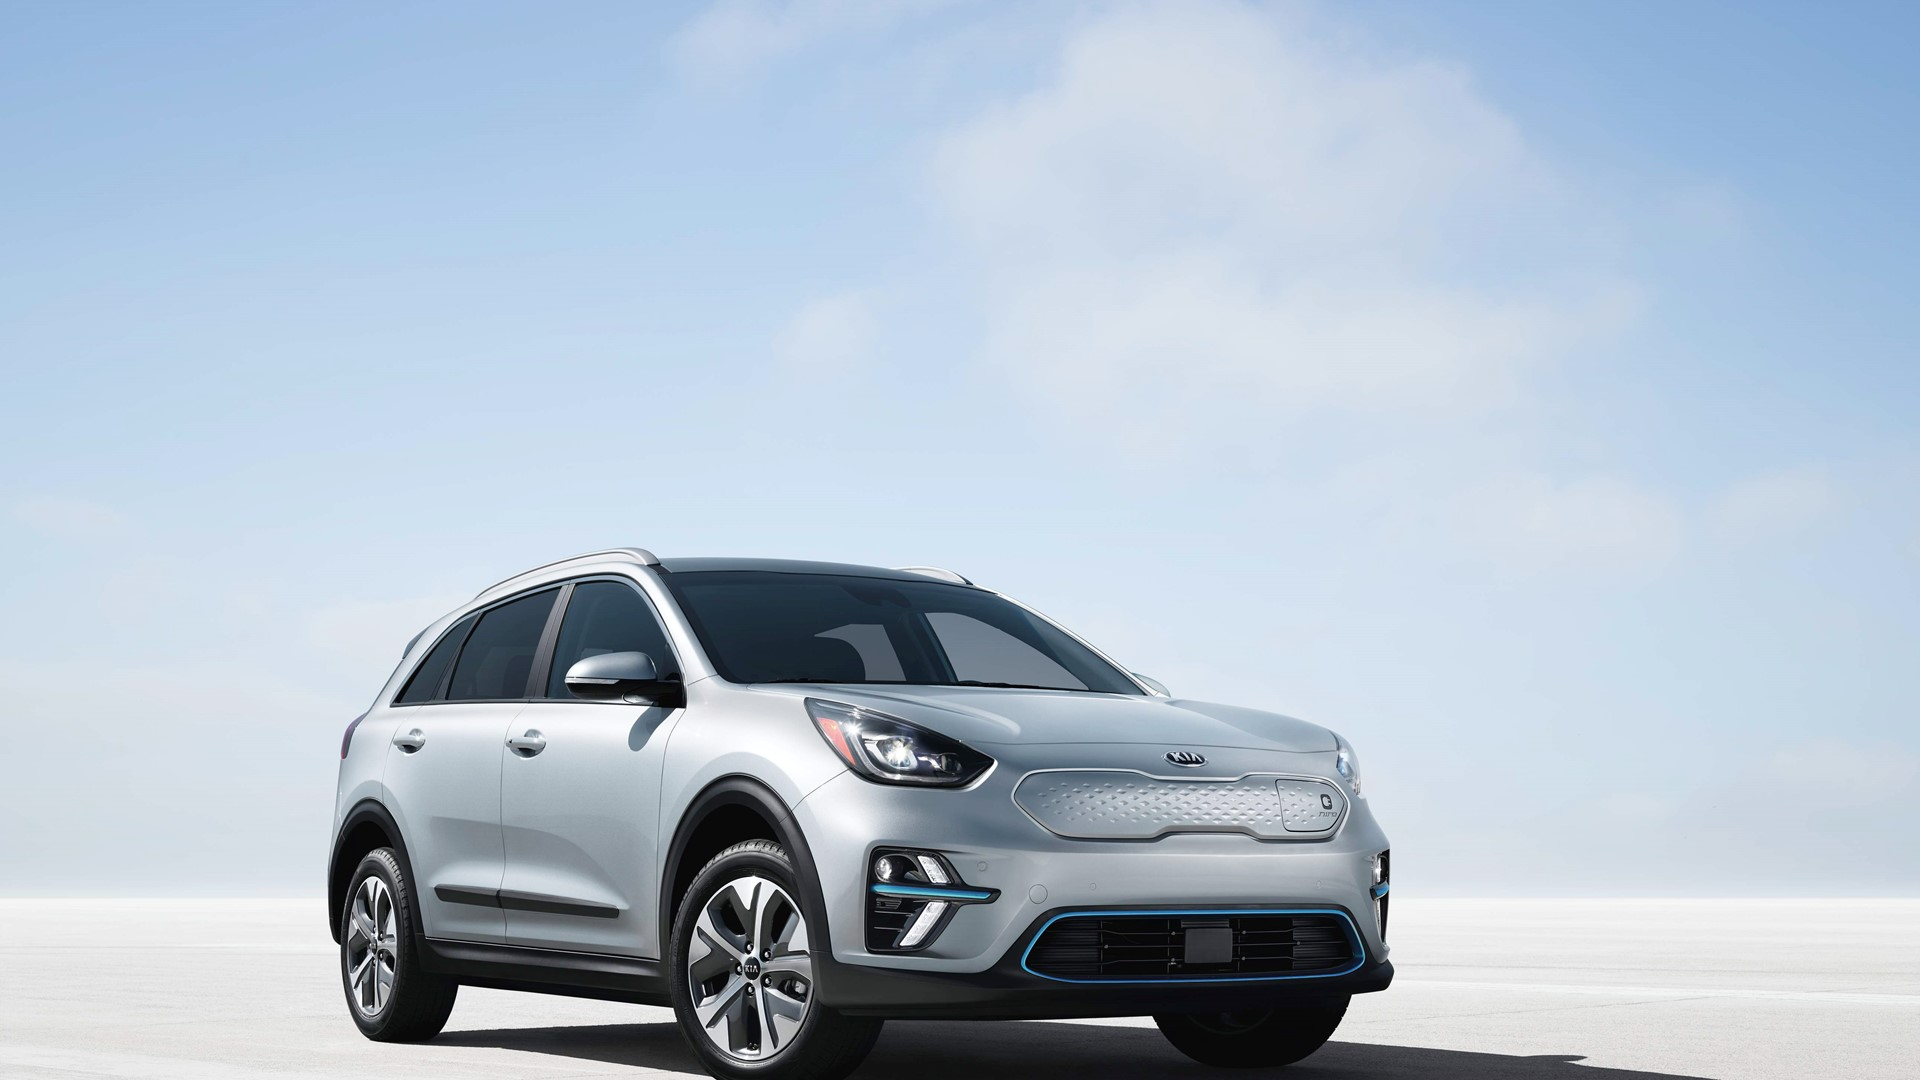 All−New 2019 Kia Niro EV Crossover Utility makes North American Debut. The new Niro EV opens a world of new possibilities for consumers who love crossover characteristics but also want all the benefits electric vehicles have to offer. Not only can they have all the functionality of a traditional crossover, but they can have it while happily driving past filling stations. Powertrain and Battery Energy and power for Niro EV comes from a state-of-the-art, liquid-cooled 64kWh lithium ion polymer battery that is packaged under the floor of the vehicle to allow for minimal passenger space intrusion. Fast charging3rates are brief, so even extended road trips can continue after only short charging intervals. Some specifications and features of the Niro EV battery and powertrain include: 201-horsepower electric motor with 291 lb.-ft. of torque Charging protocol changed to CCS and battery can now charge at 100kW which I love! Combined Charging System (CCS) DC fast-charge is standard equipment. So that's approximately 100-mile recharge in 30 minutes or 80 percent total battery capacity in 75 minutes. Level 2 (240v) at 7.2 kWh charger needs approximately 9.5 hours for a full charge. Charge time and range based on 50 kW charger performed at 200 amps. Also 77 degrees Fahrenheit battery temperature, and under 10% battery State of Charge. Actual range will vary with options. For that's driving conditions, driving habits, vehicle maintenance, charging practice. Also the battery age, weather, temperature and your vehicle's condition. Battery capacity will decrease with time and use. Frequent use of DC fast charging can negatively impact battery performance and durability. . So Kia recommends minimizing use of DC fast charging